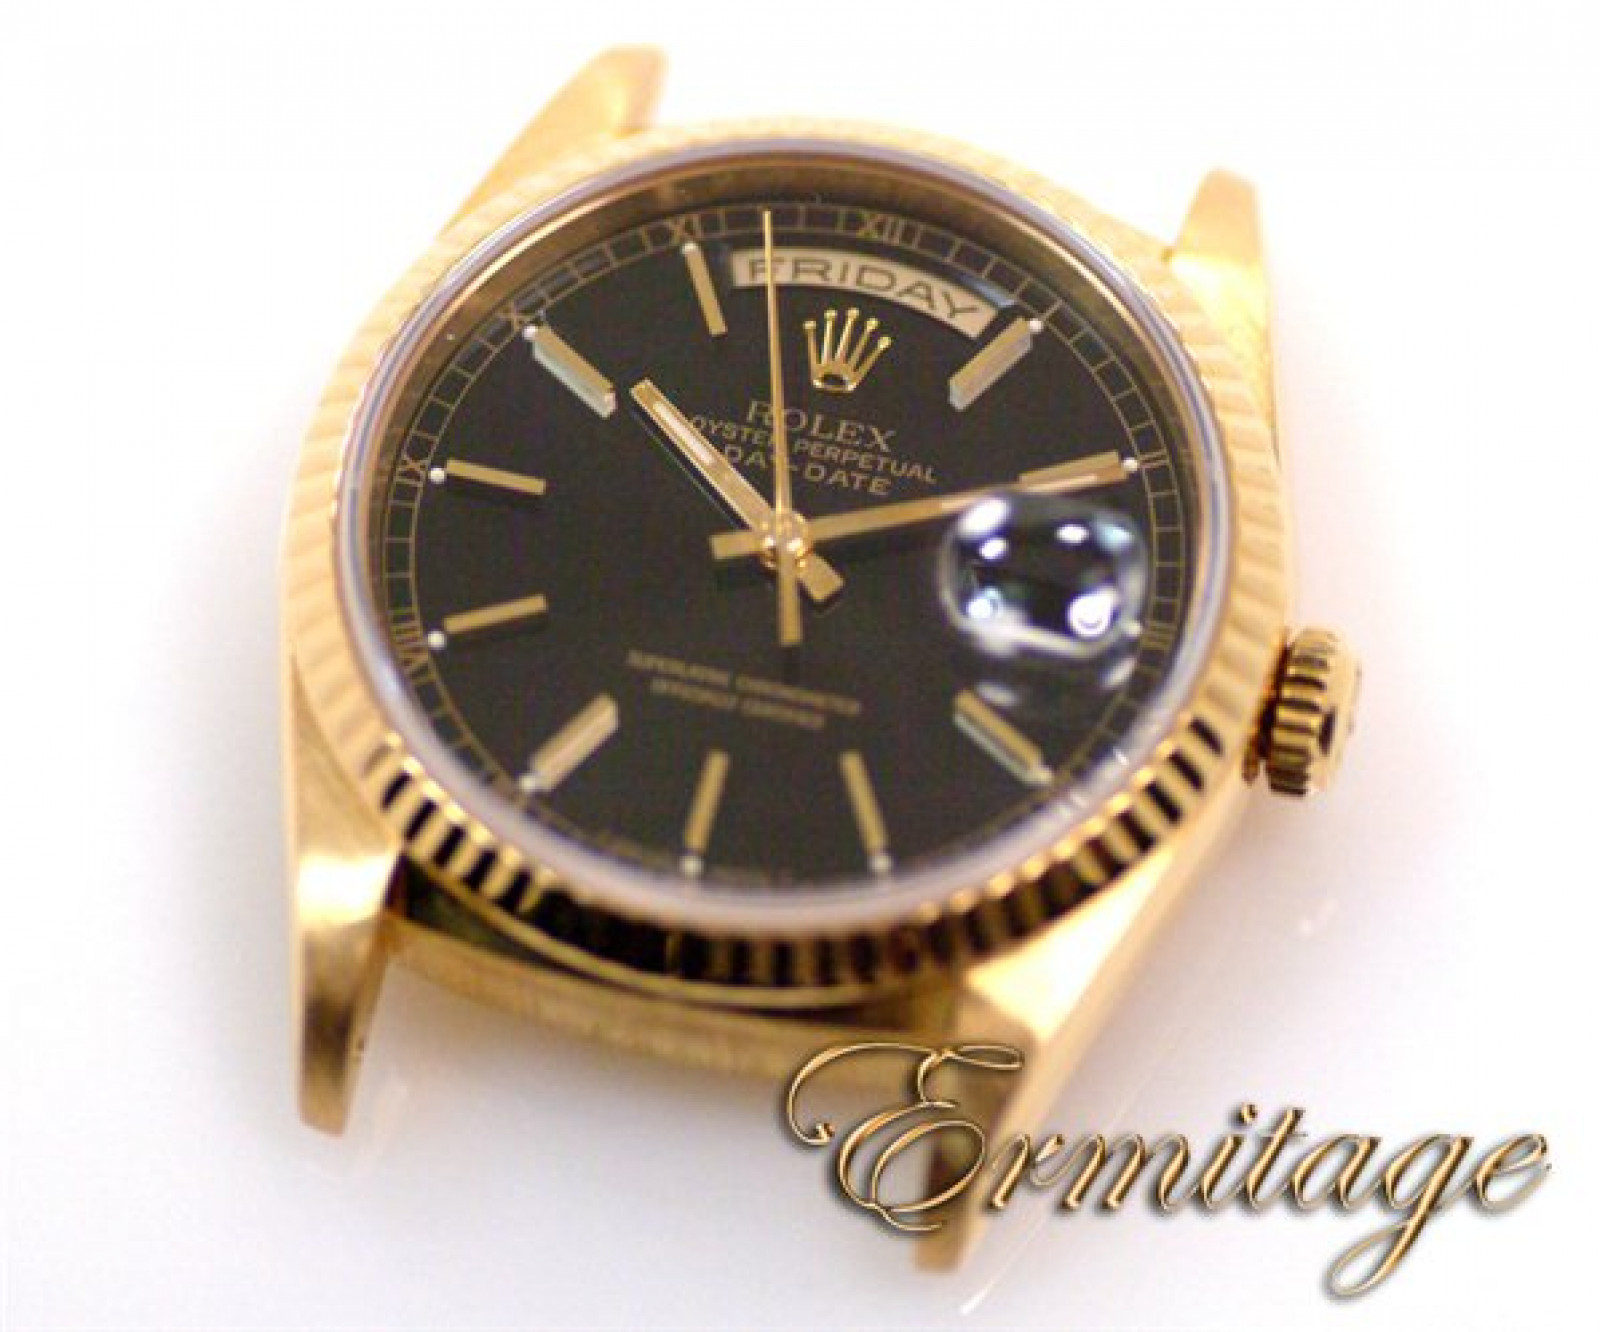 Rolex Day-Date 18238 Gold with Black Dial Year 1997